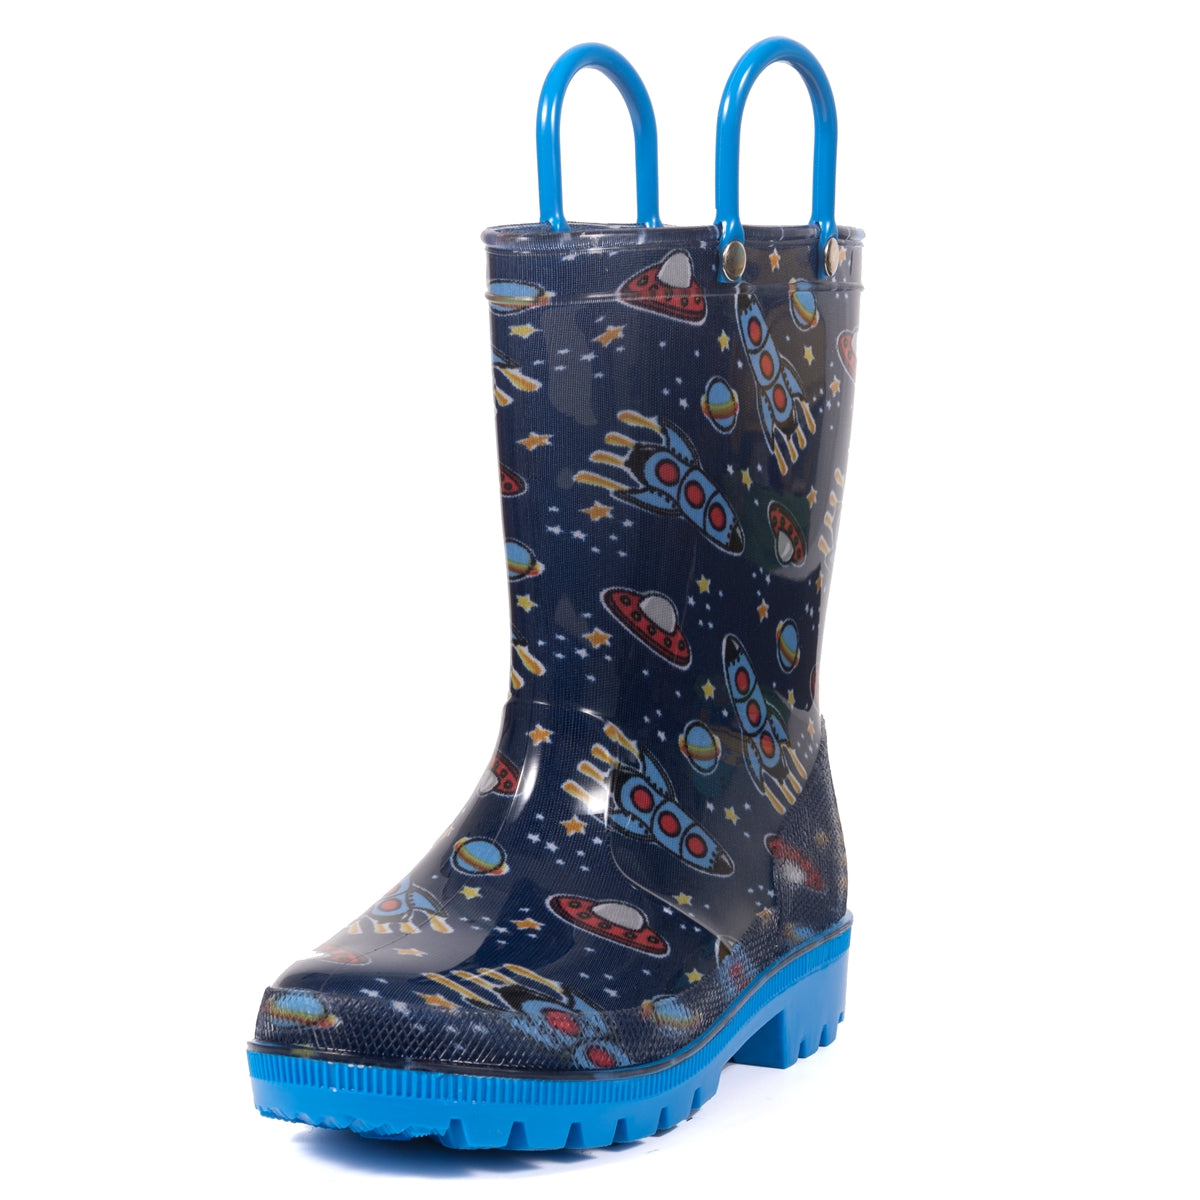 Outee Boys Lightweight Rain Boots - Navy Cosmo